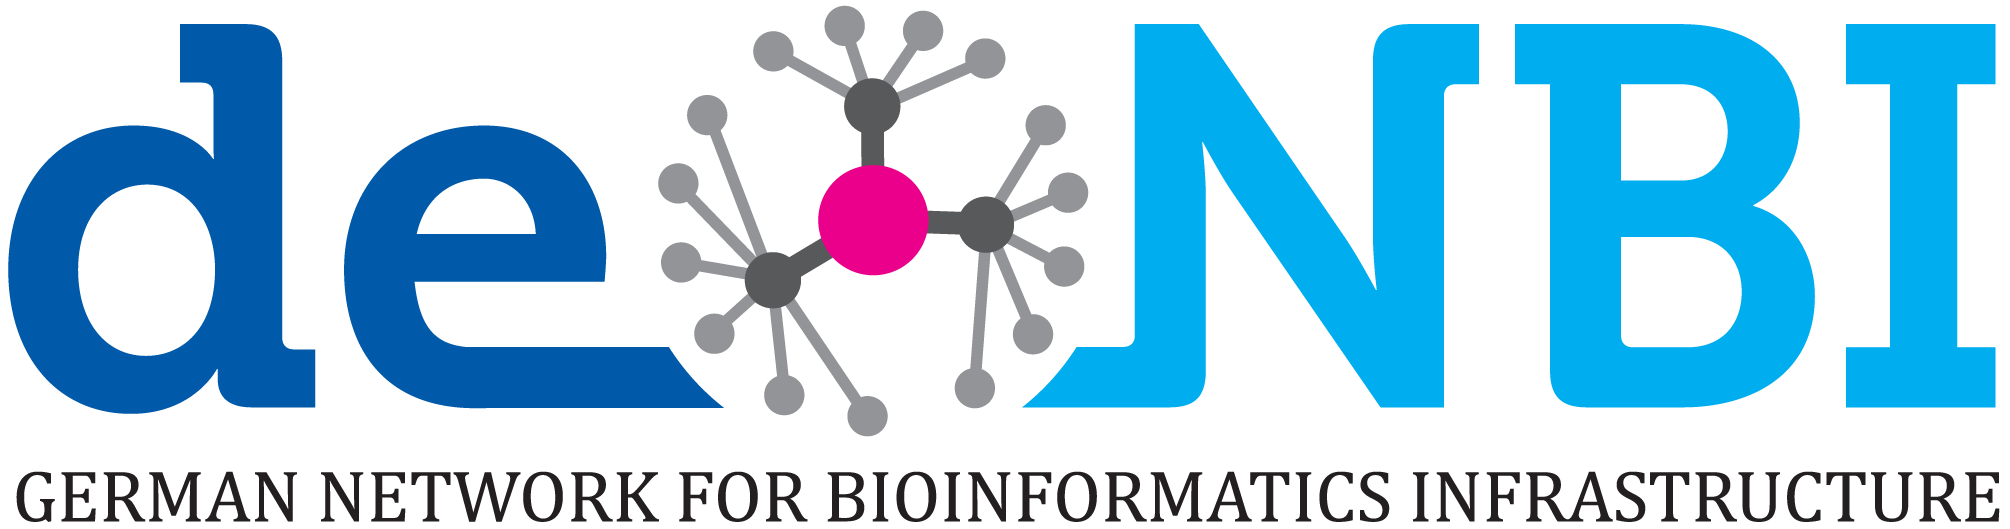 German Network for Bioinformatics Infrastructure